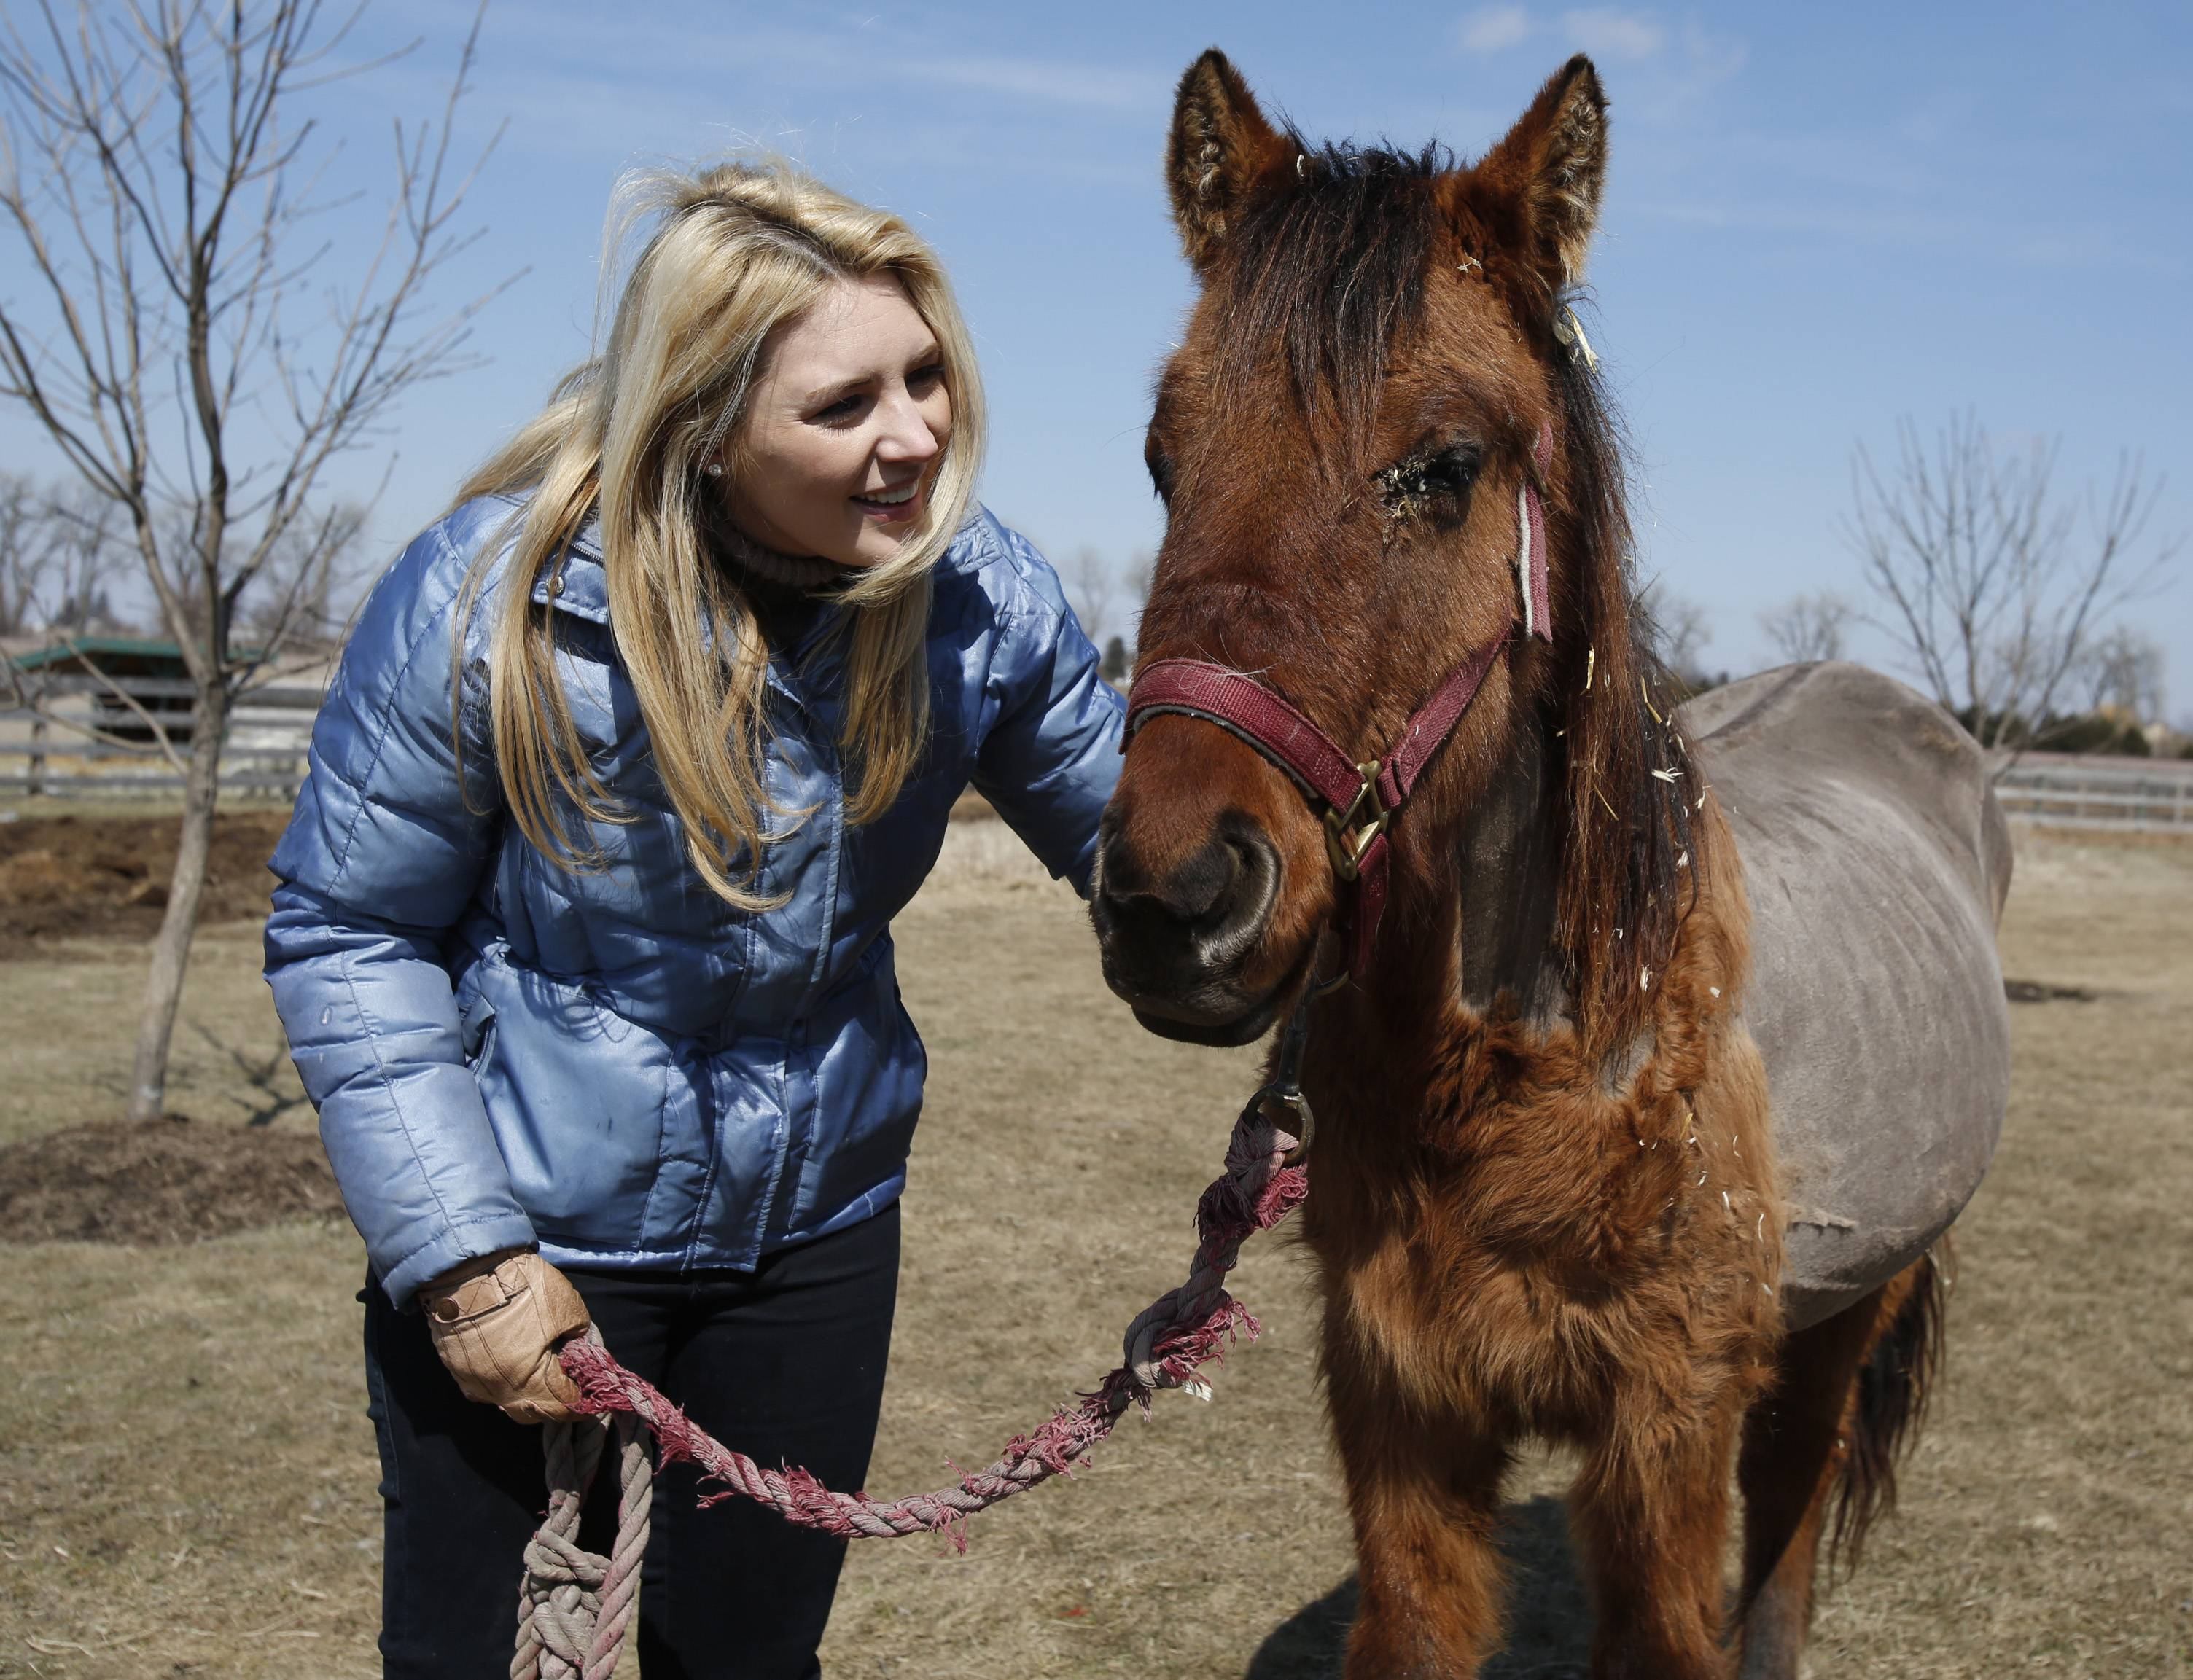 Laura Van Der Snick of St. Charles is volunteering her time to help coordinate the care of animals like this malnourished horse.